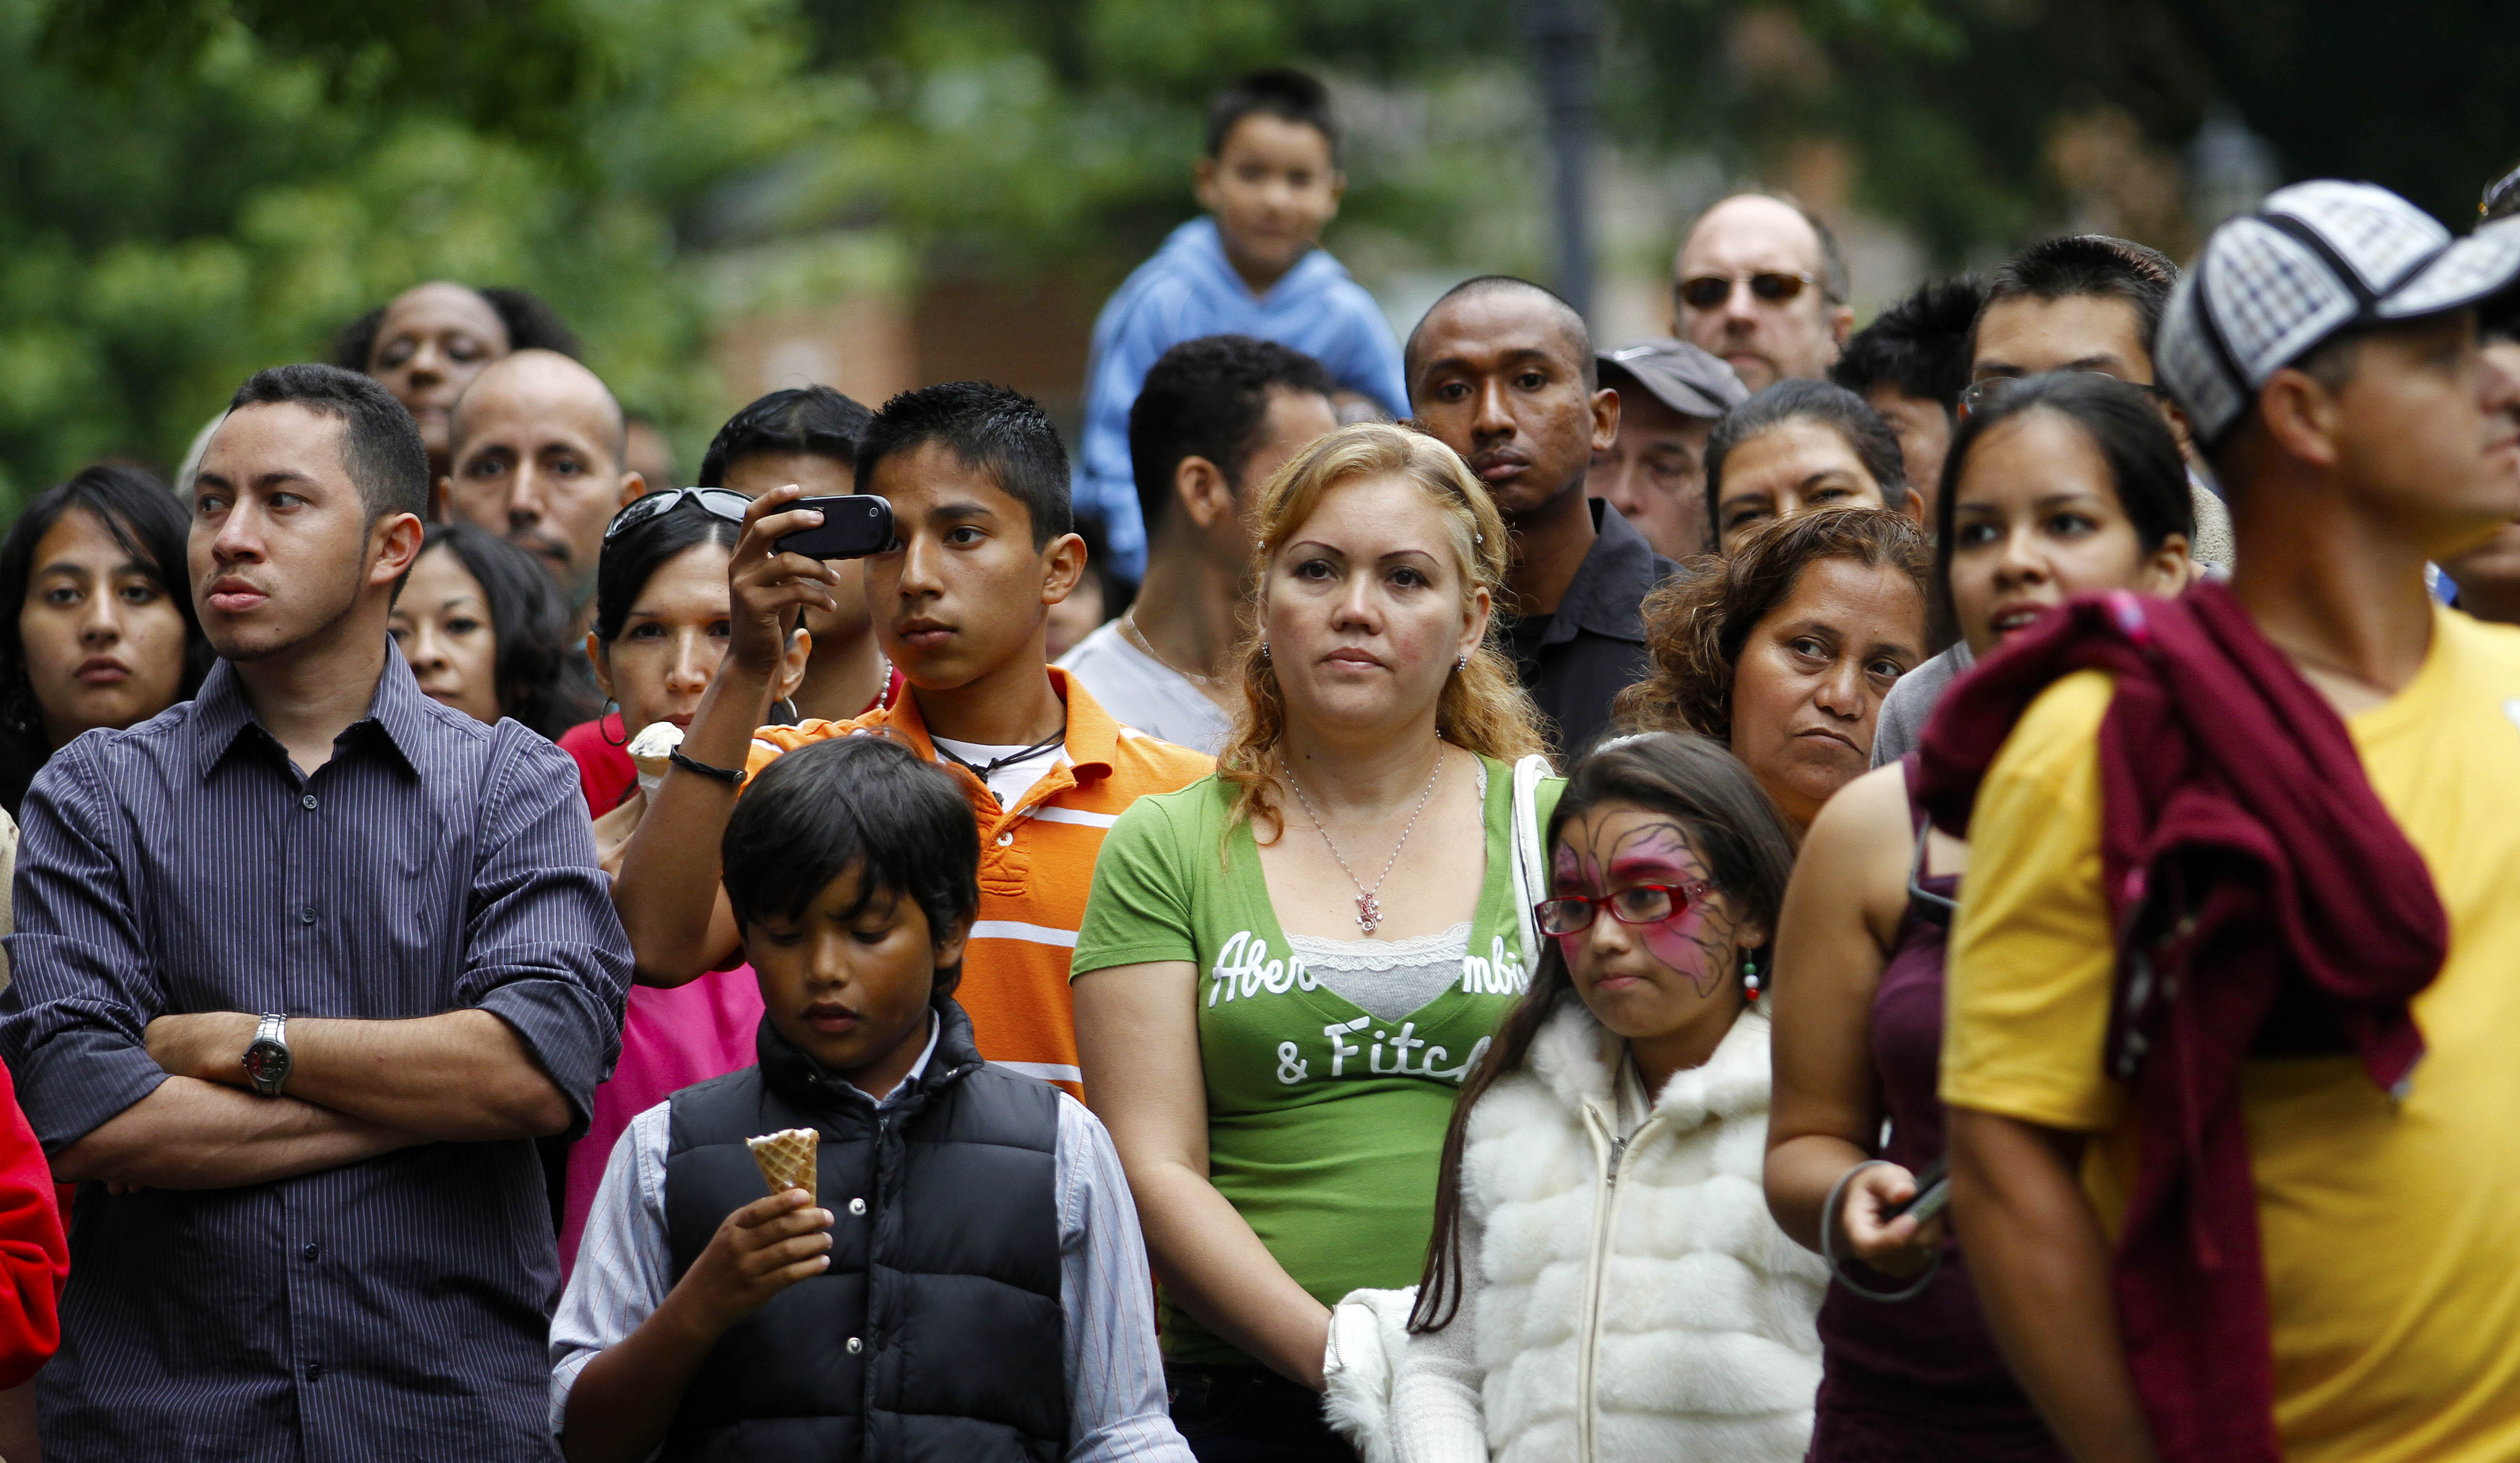 Spectators watch a musical performance at the Fiesta del Pueblo festival in Raleigh, North Carolina.